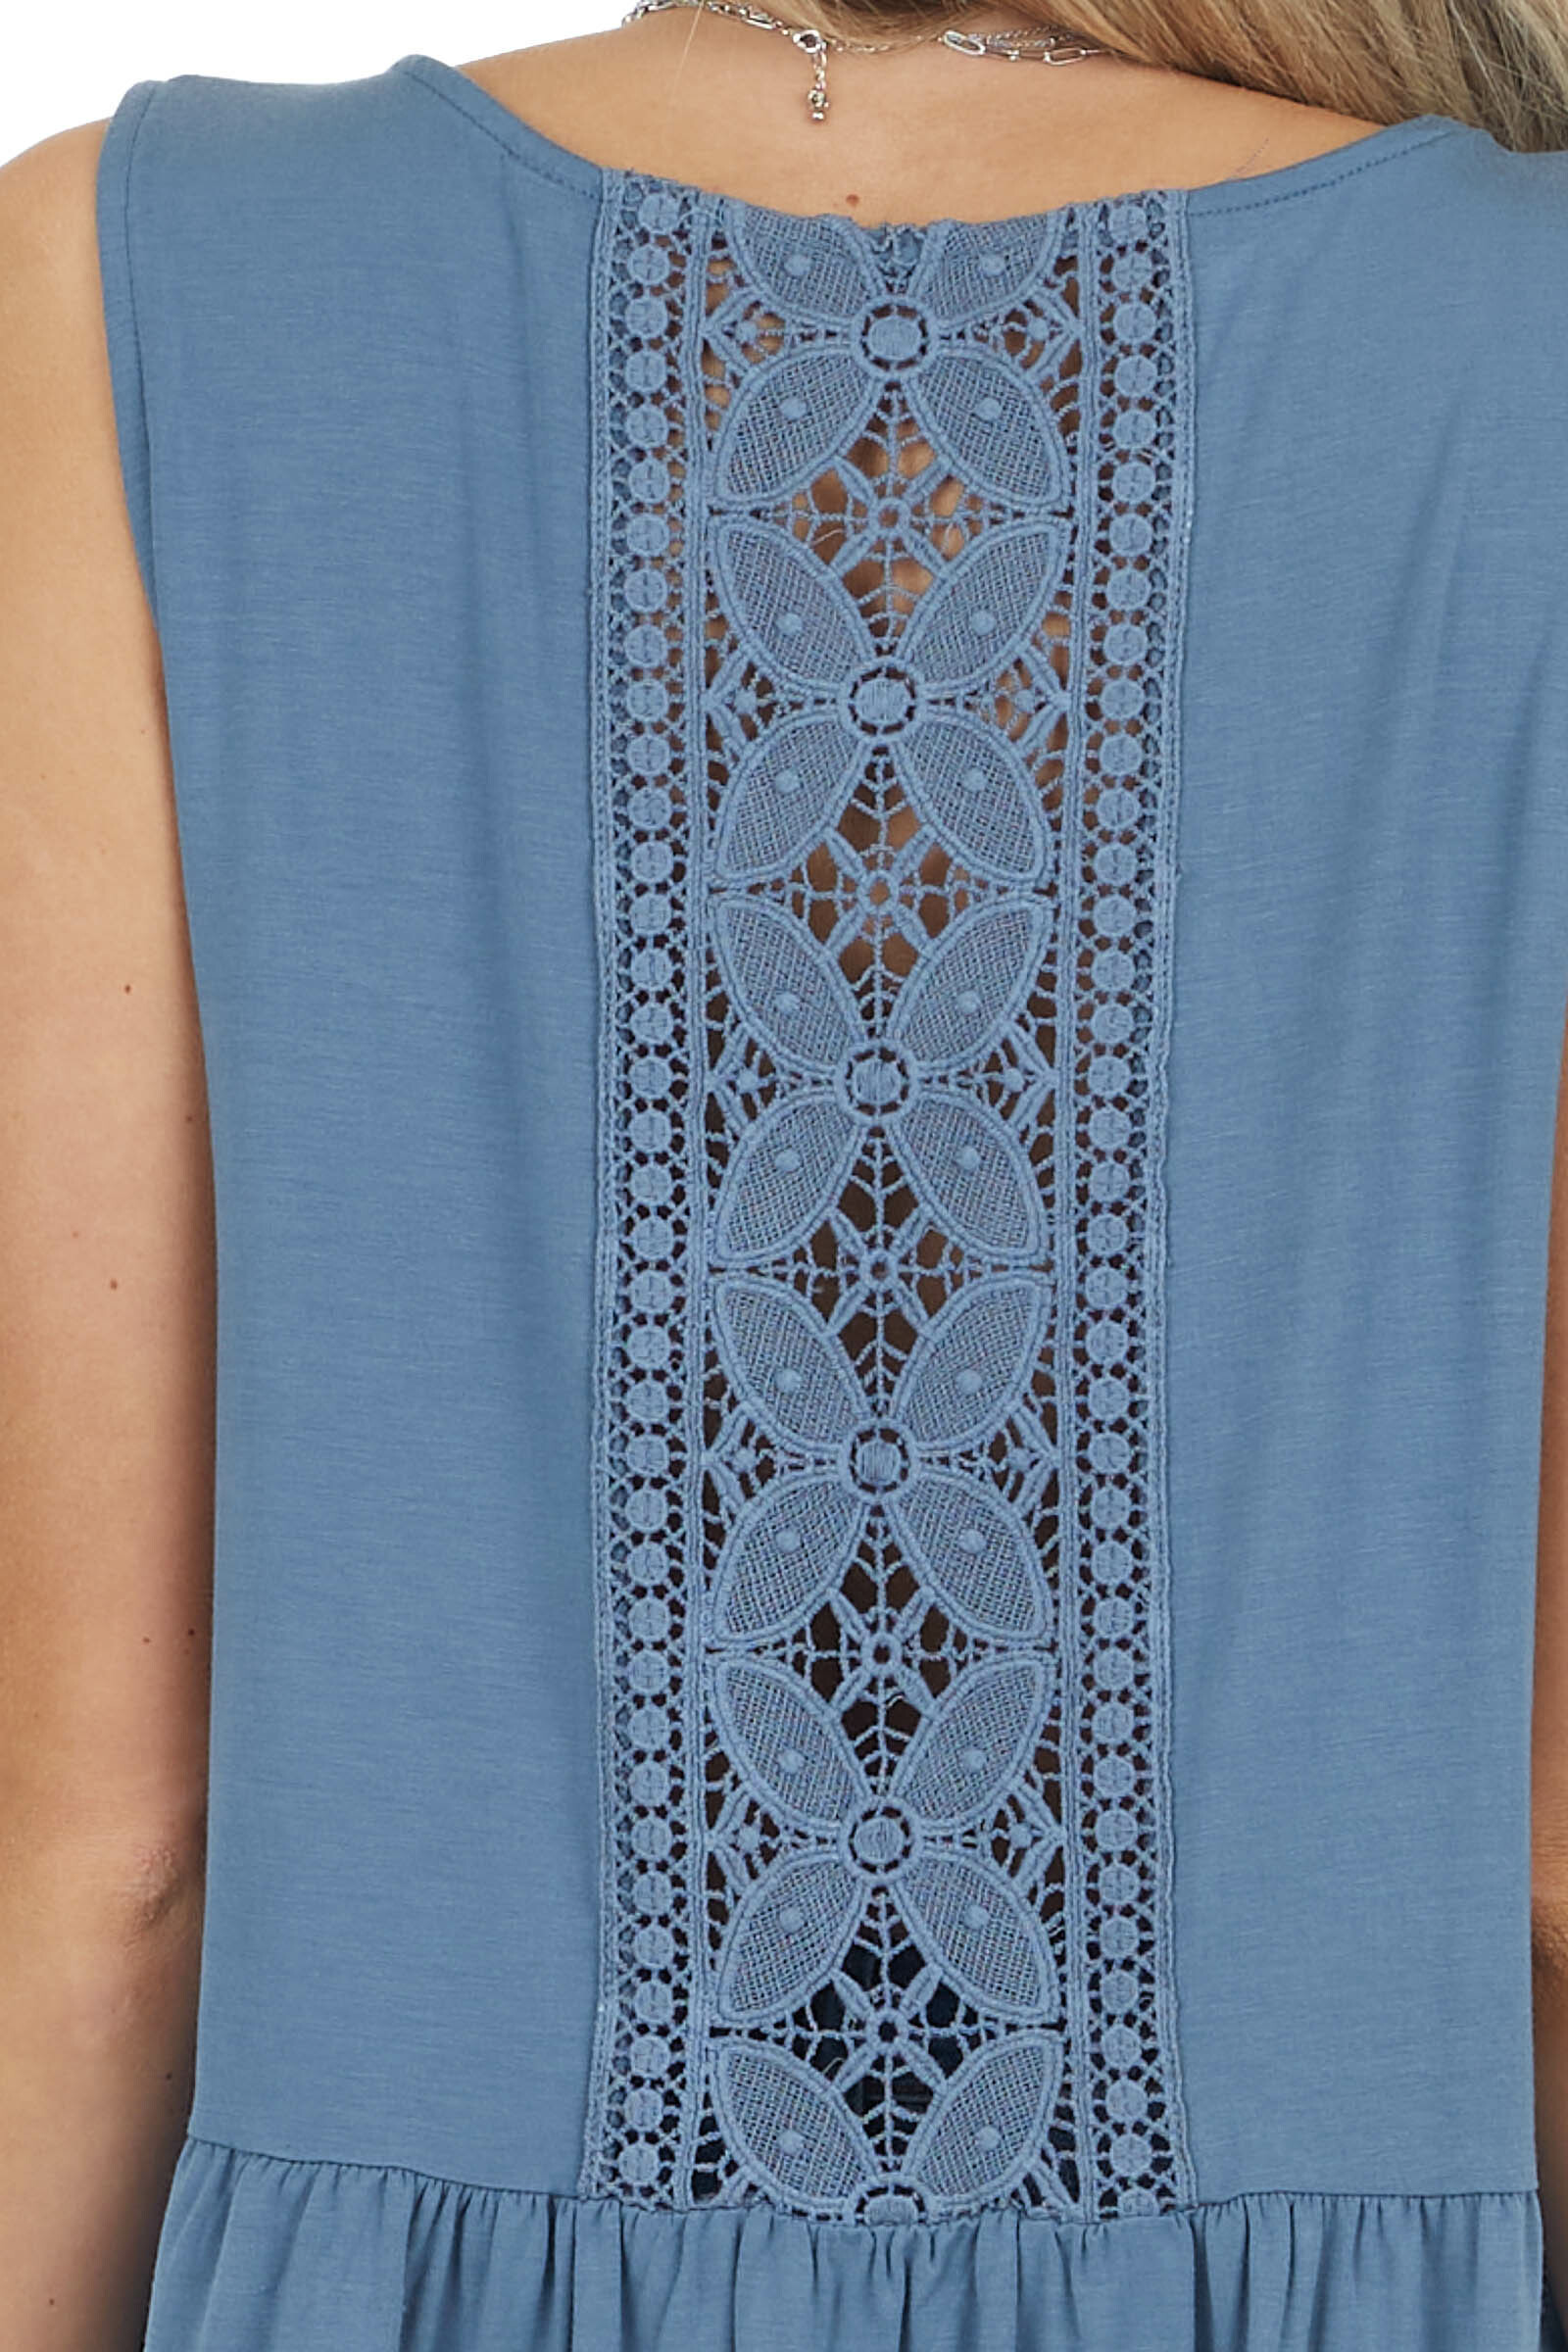 Dark Slate Blue Peplum Tank Top with Sheer Lace Back Detail